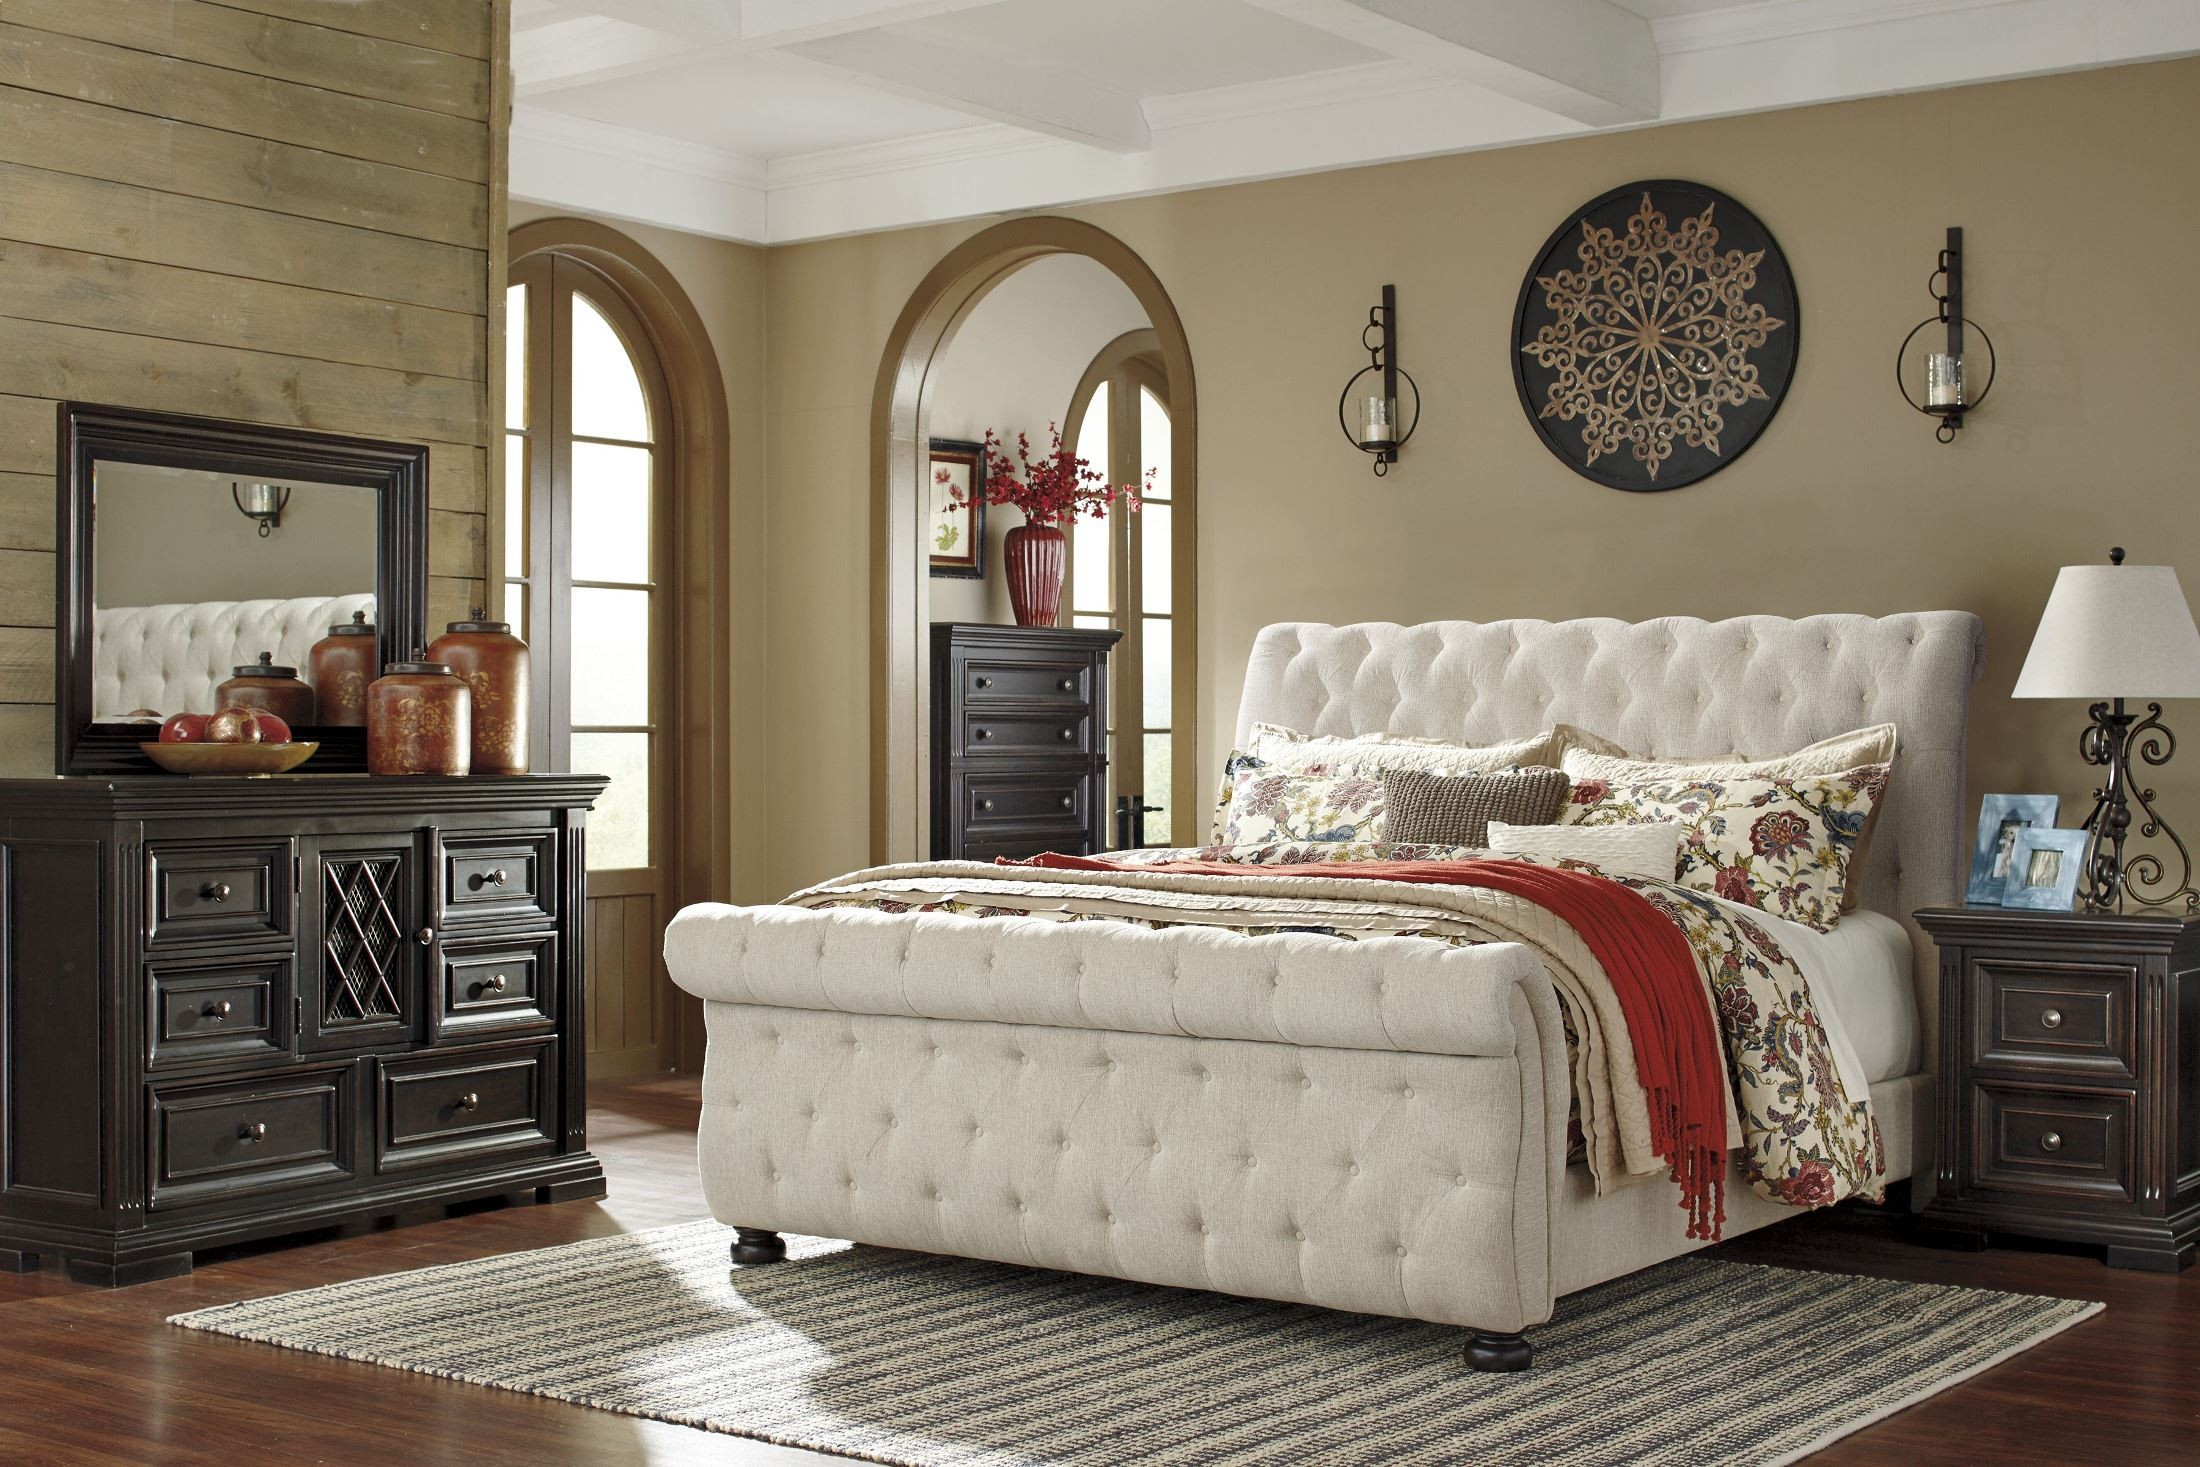 Willenburg Linen Upholstered Sleigh Bedroom Set from Ashley